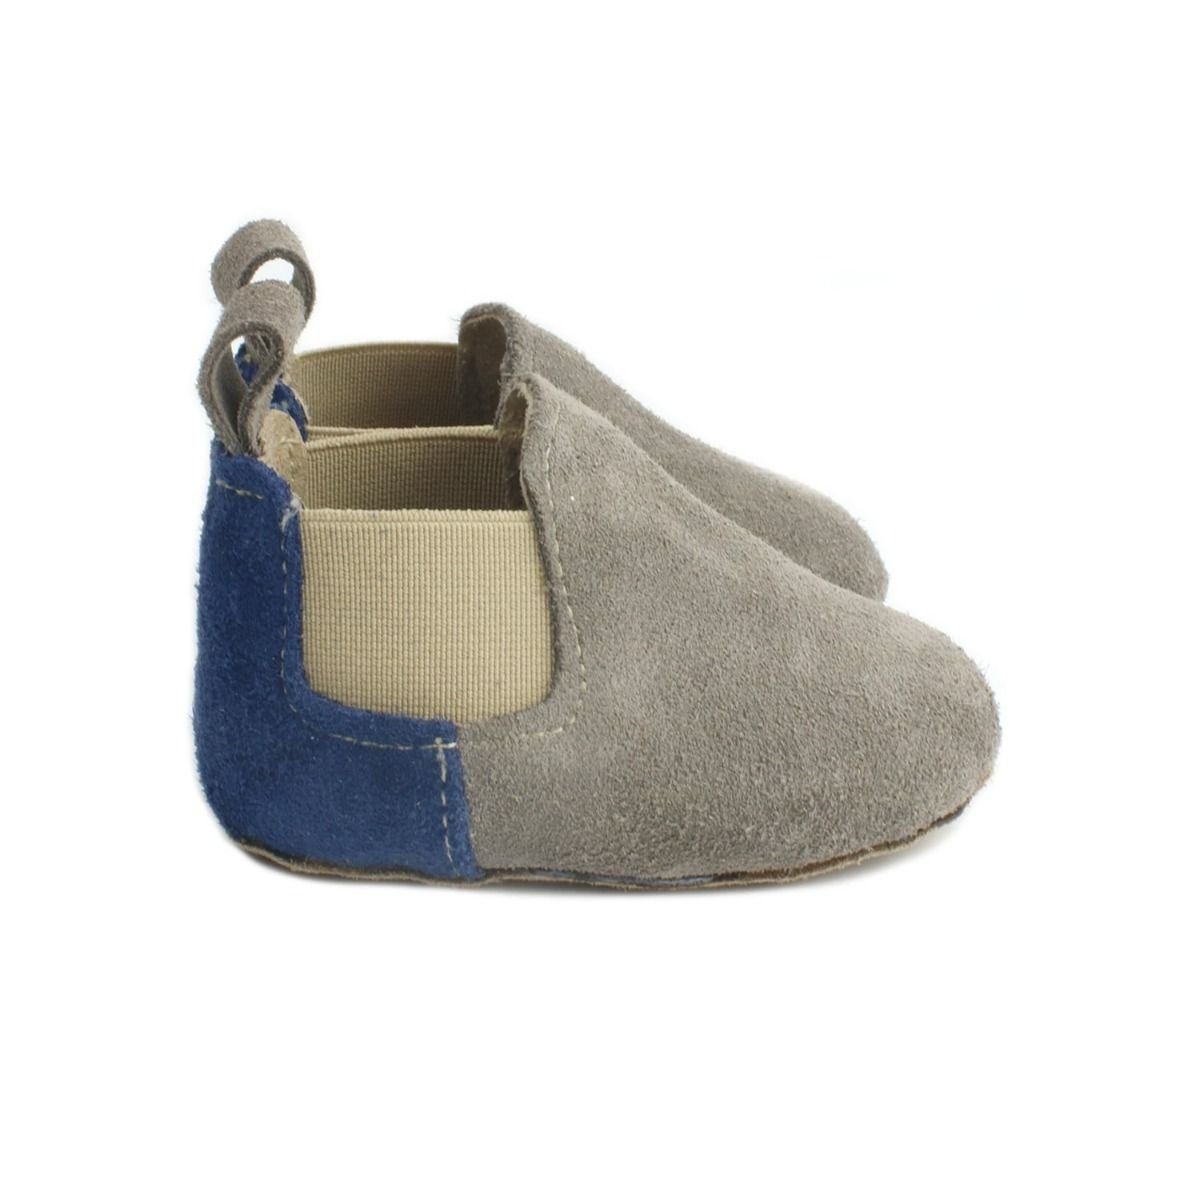 Baby boots in grey suede with blue panel on the heel